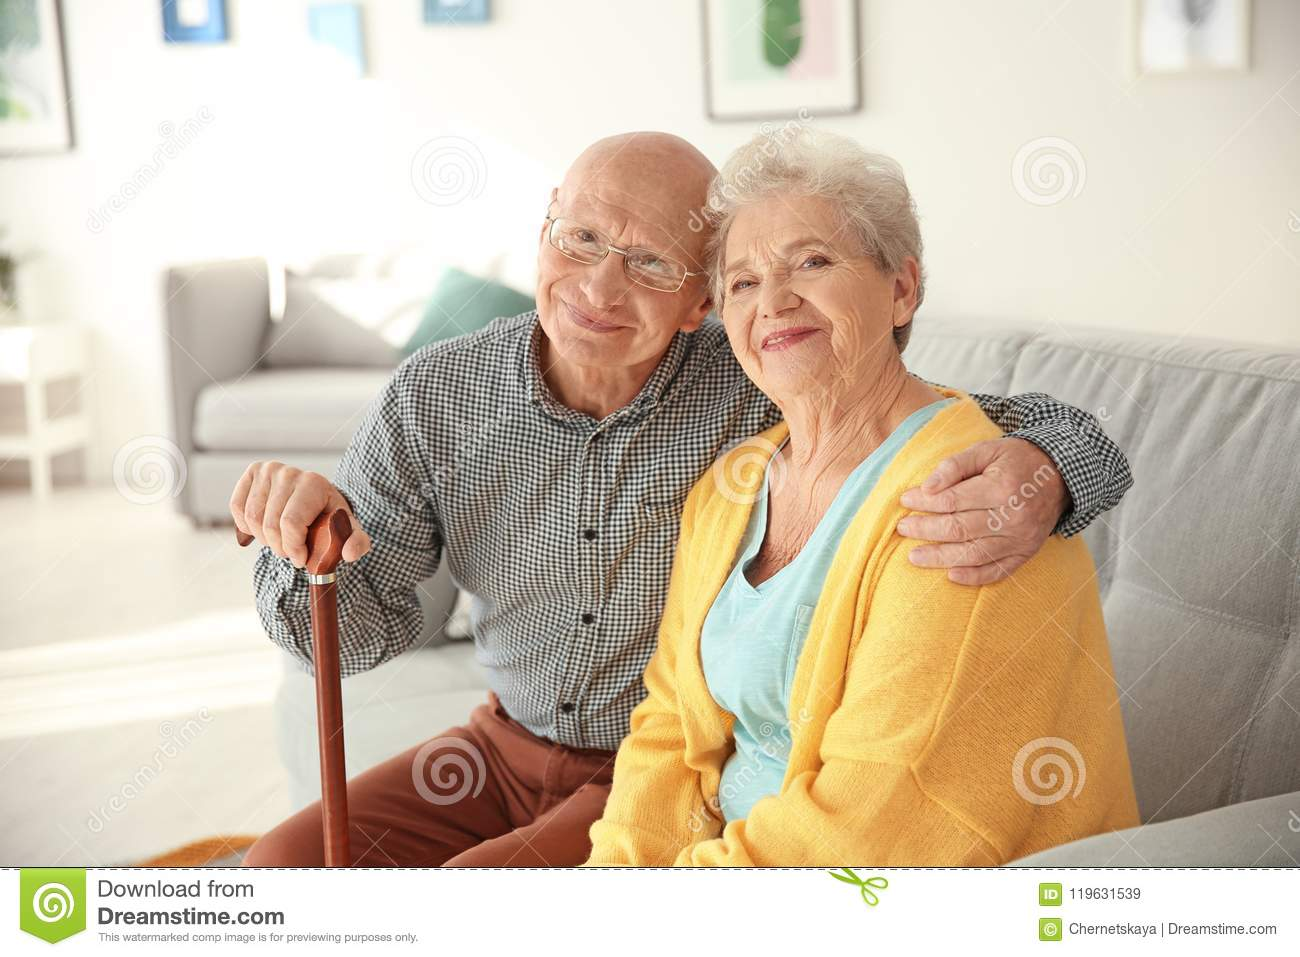 Download Elderly Couple Sitting On Couch Stock Image - Image of female, living: 119631539